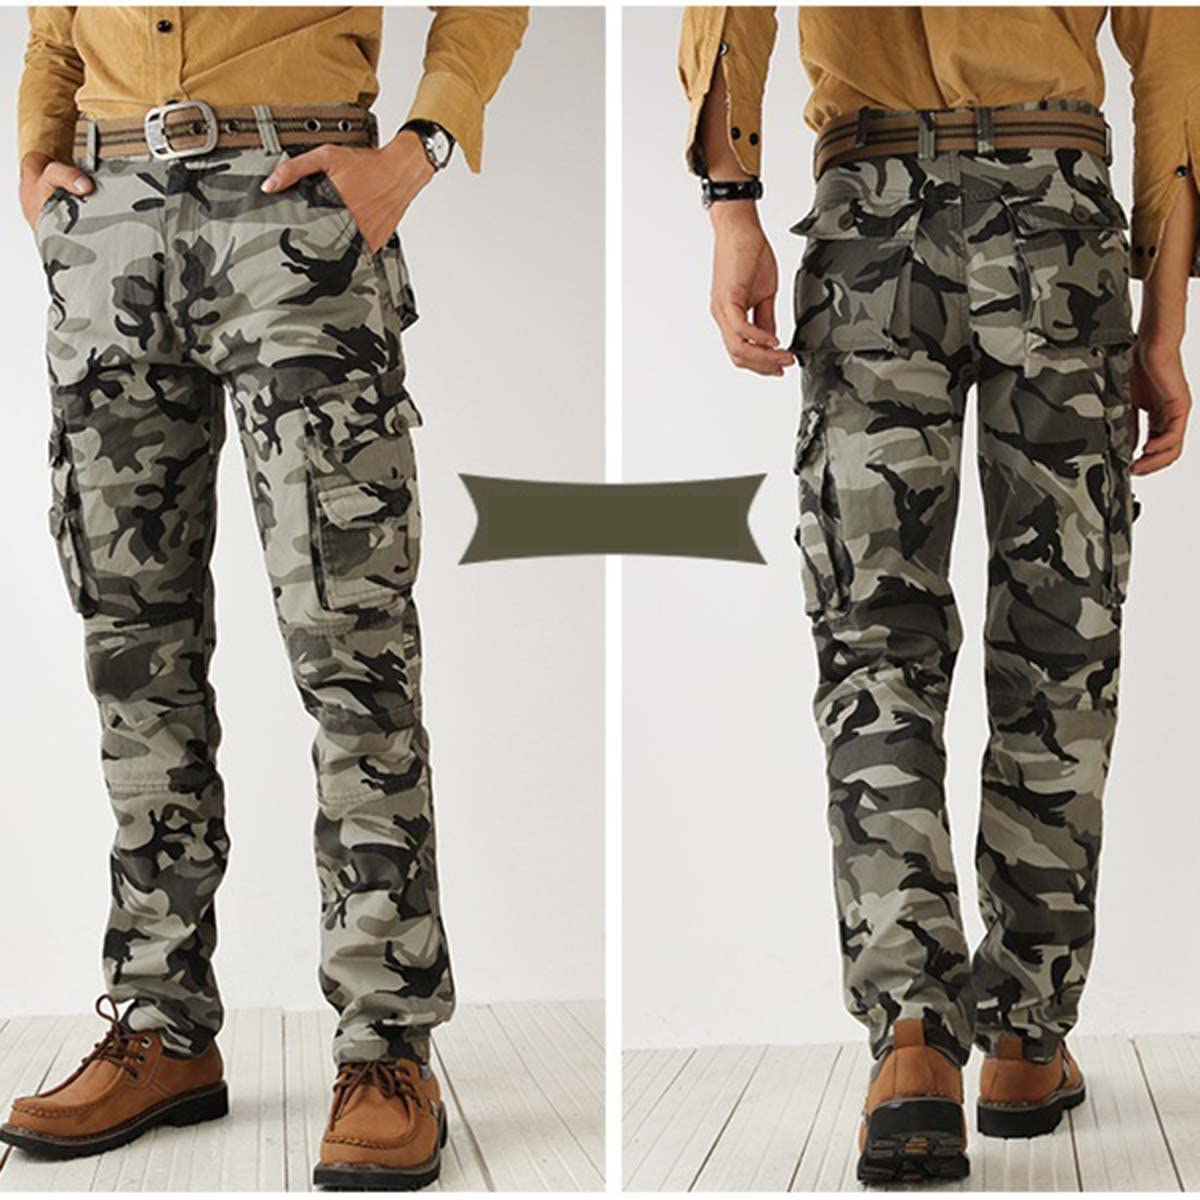 Panegy Mens Camouflage Army Work Pants Combat Wild Tactical Outdoors Trousers